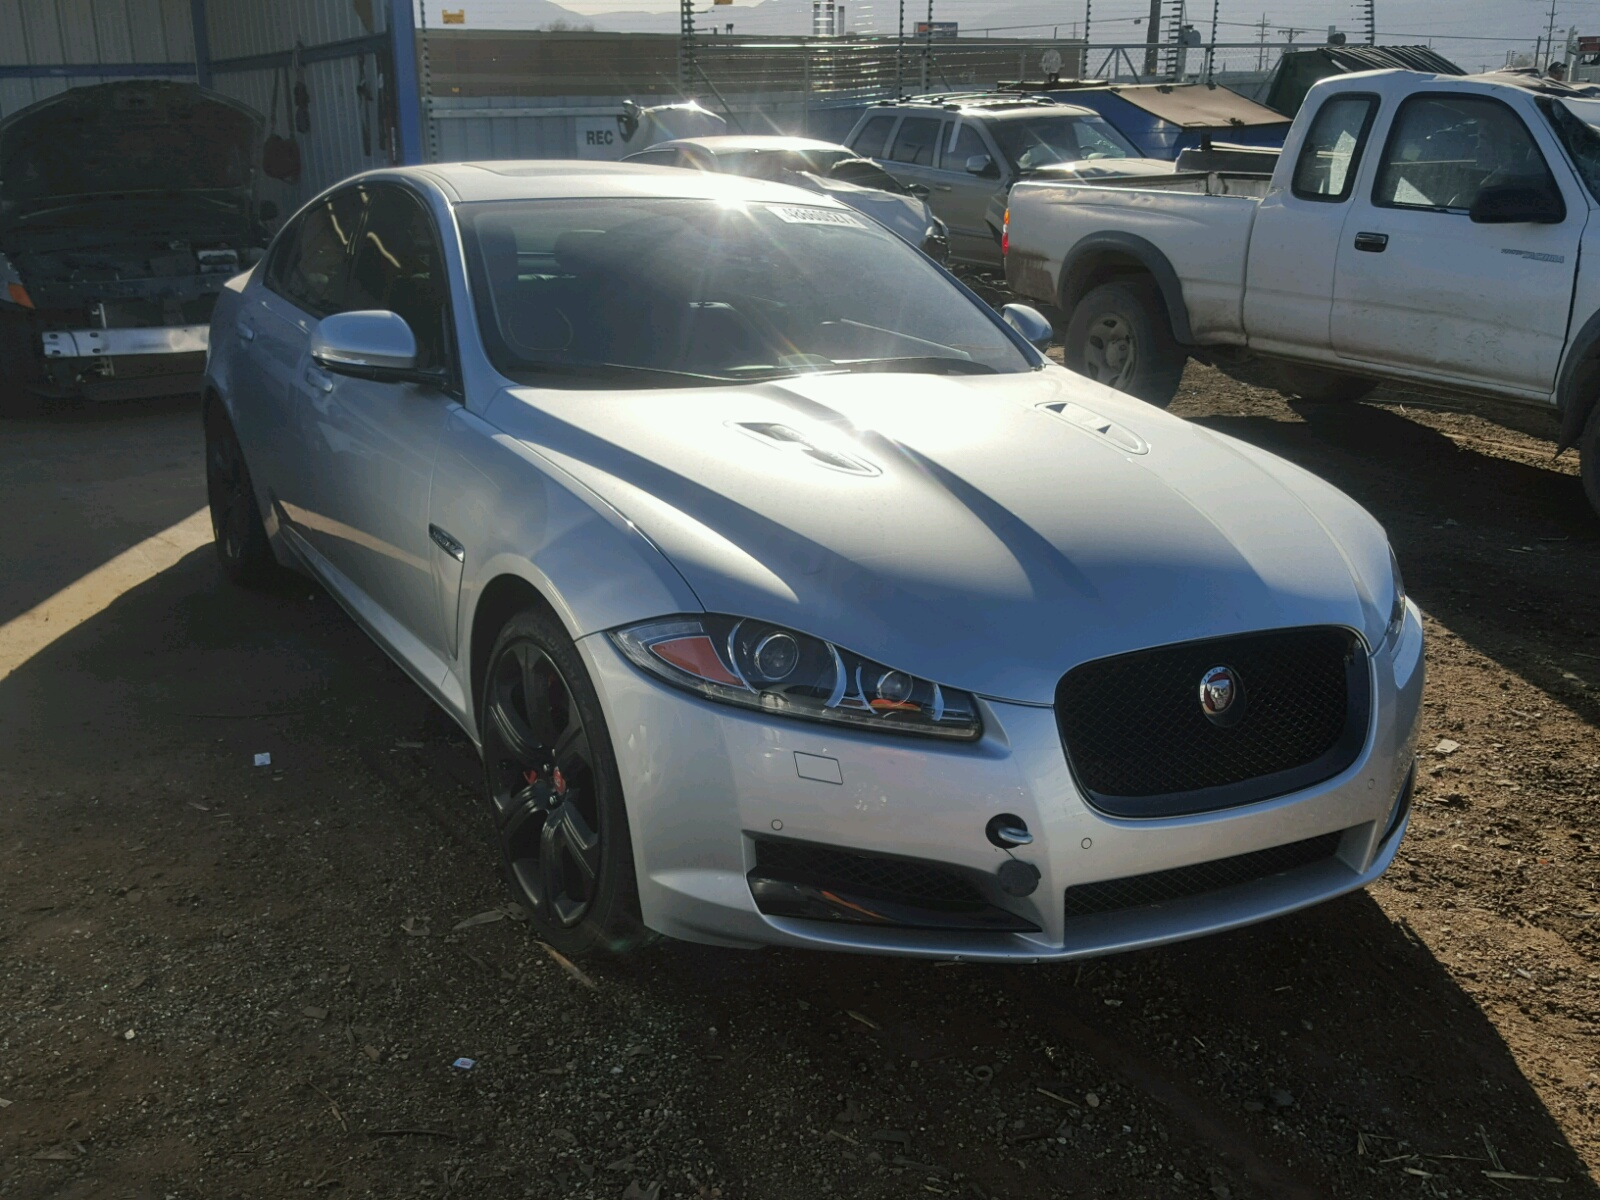 xf u s sale the november on set go us auto in jaguar sportbrake news for to